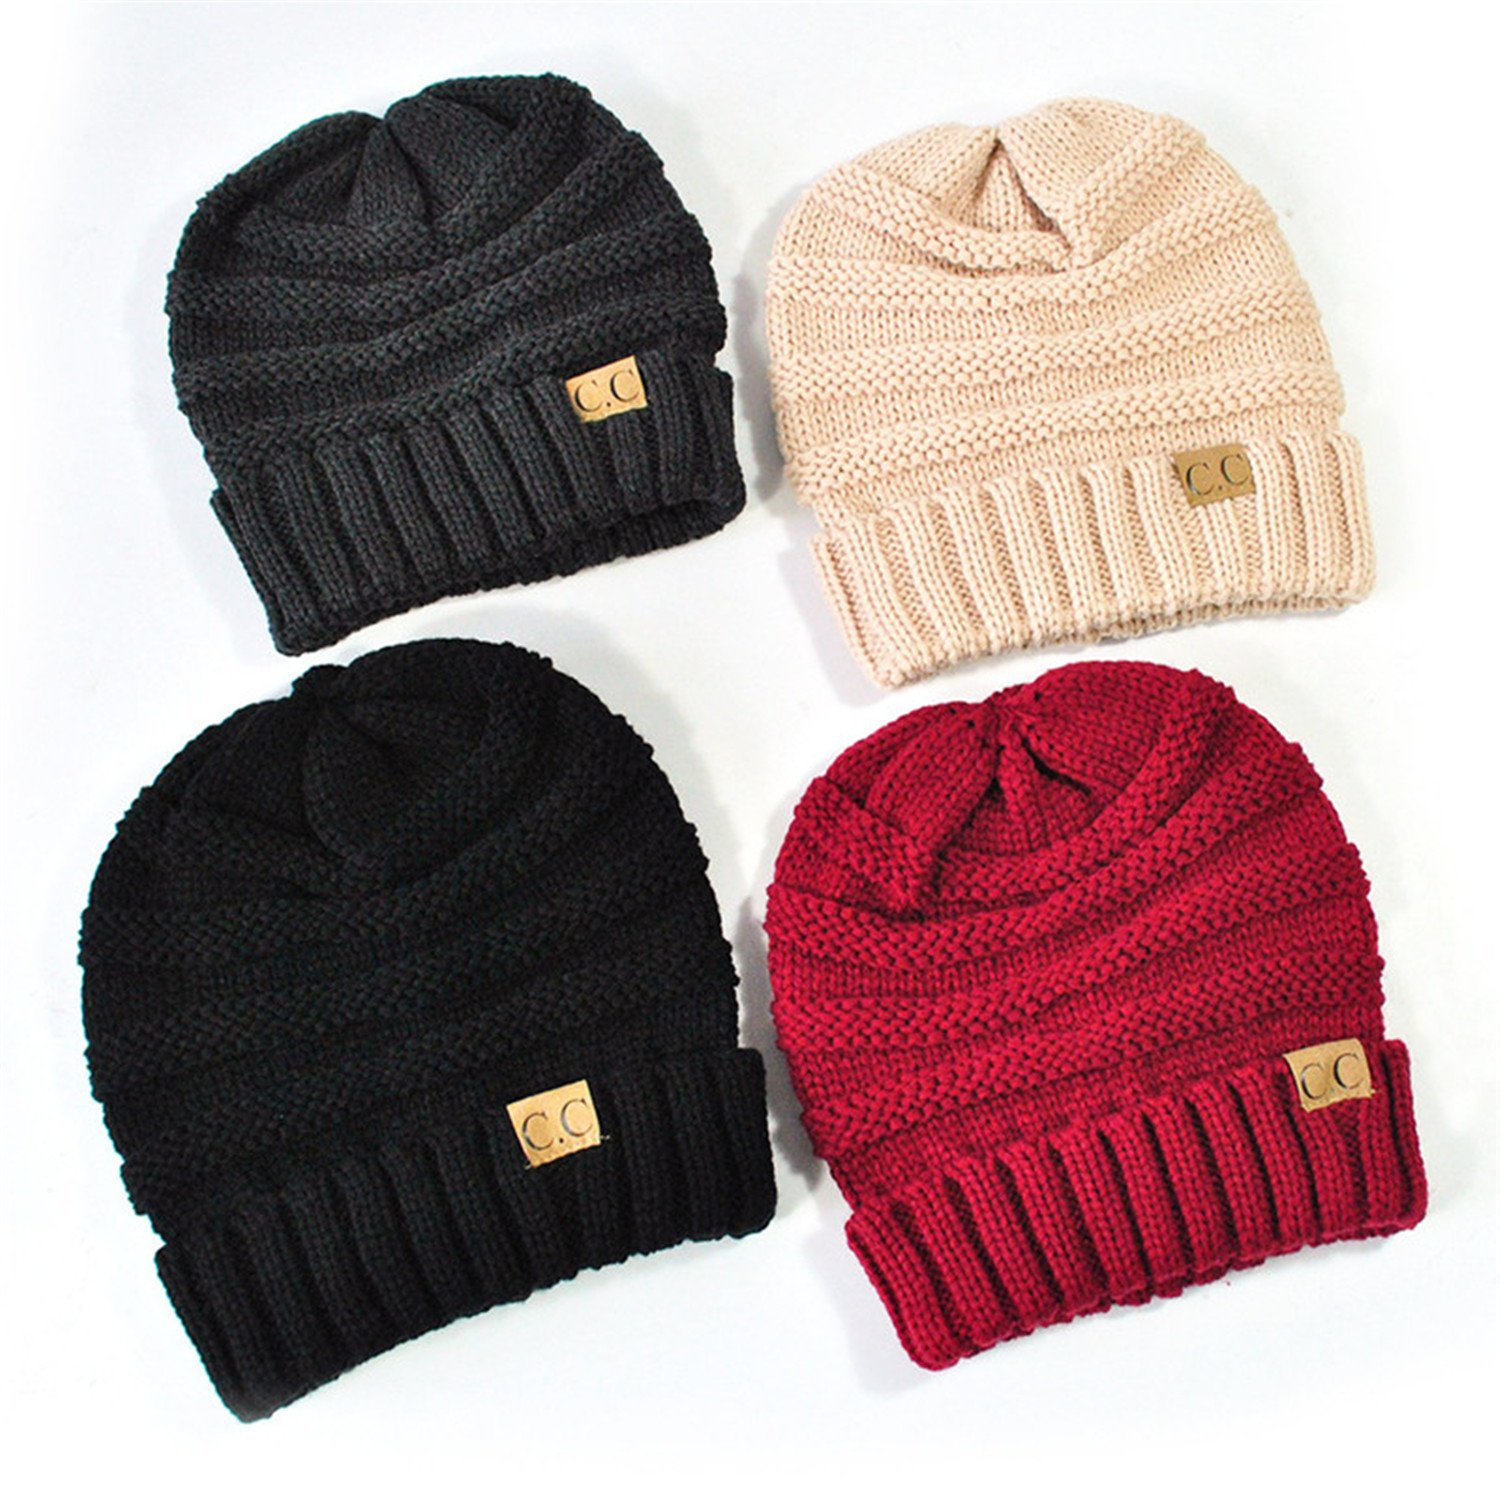 1b82a9ad4bd Amazon.com  Gome-z 13 colors Unisex Winter Knitted Wool Cap Women Men Folds  Casual CC labeling Beanies Hat Solid Color Hip-Hop Beanie Hat Gorros Pink   ...